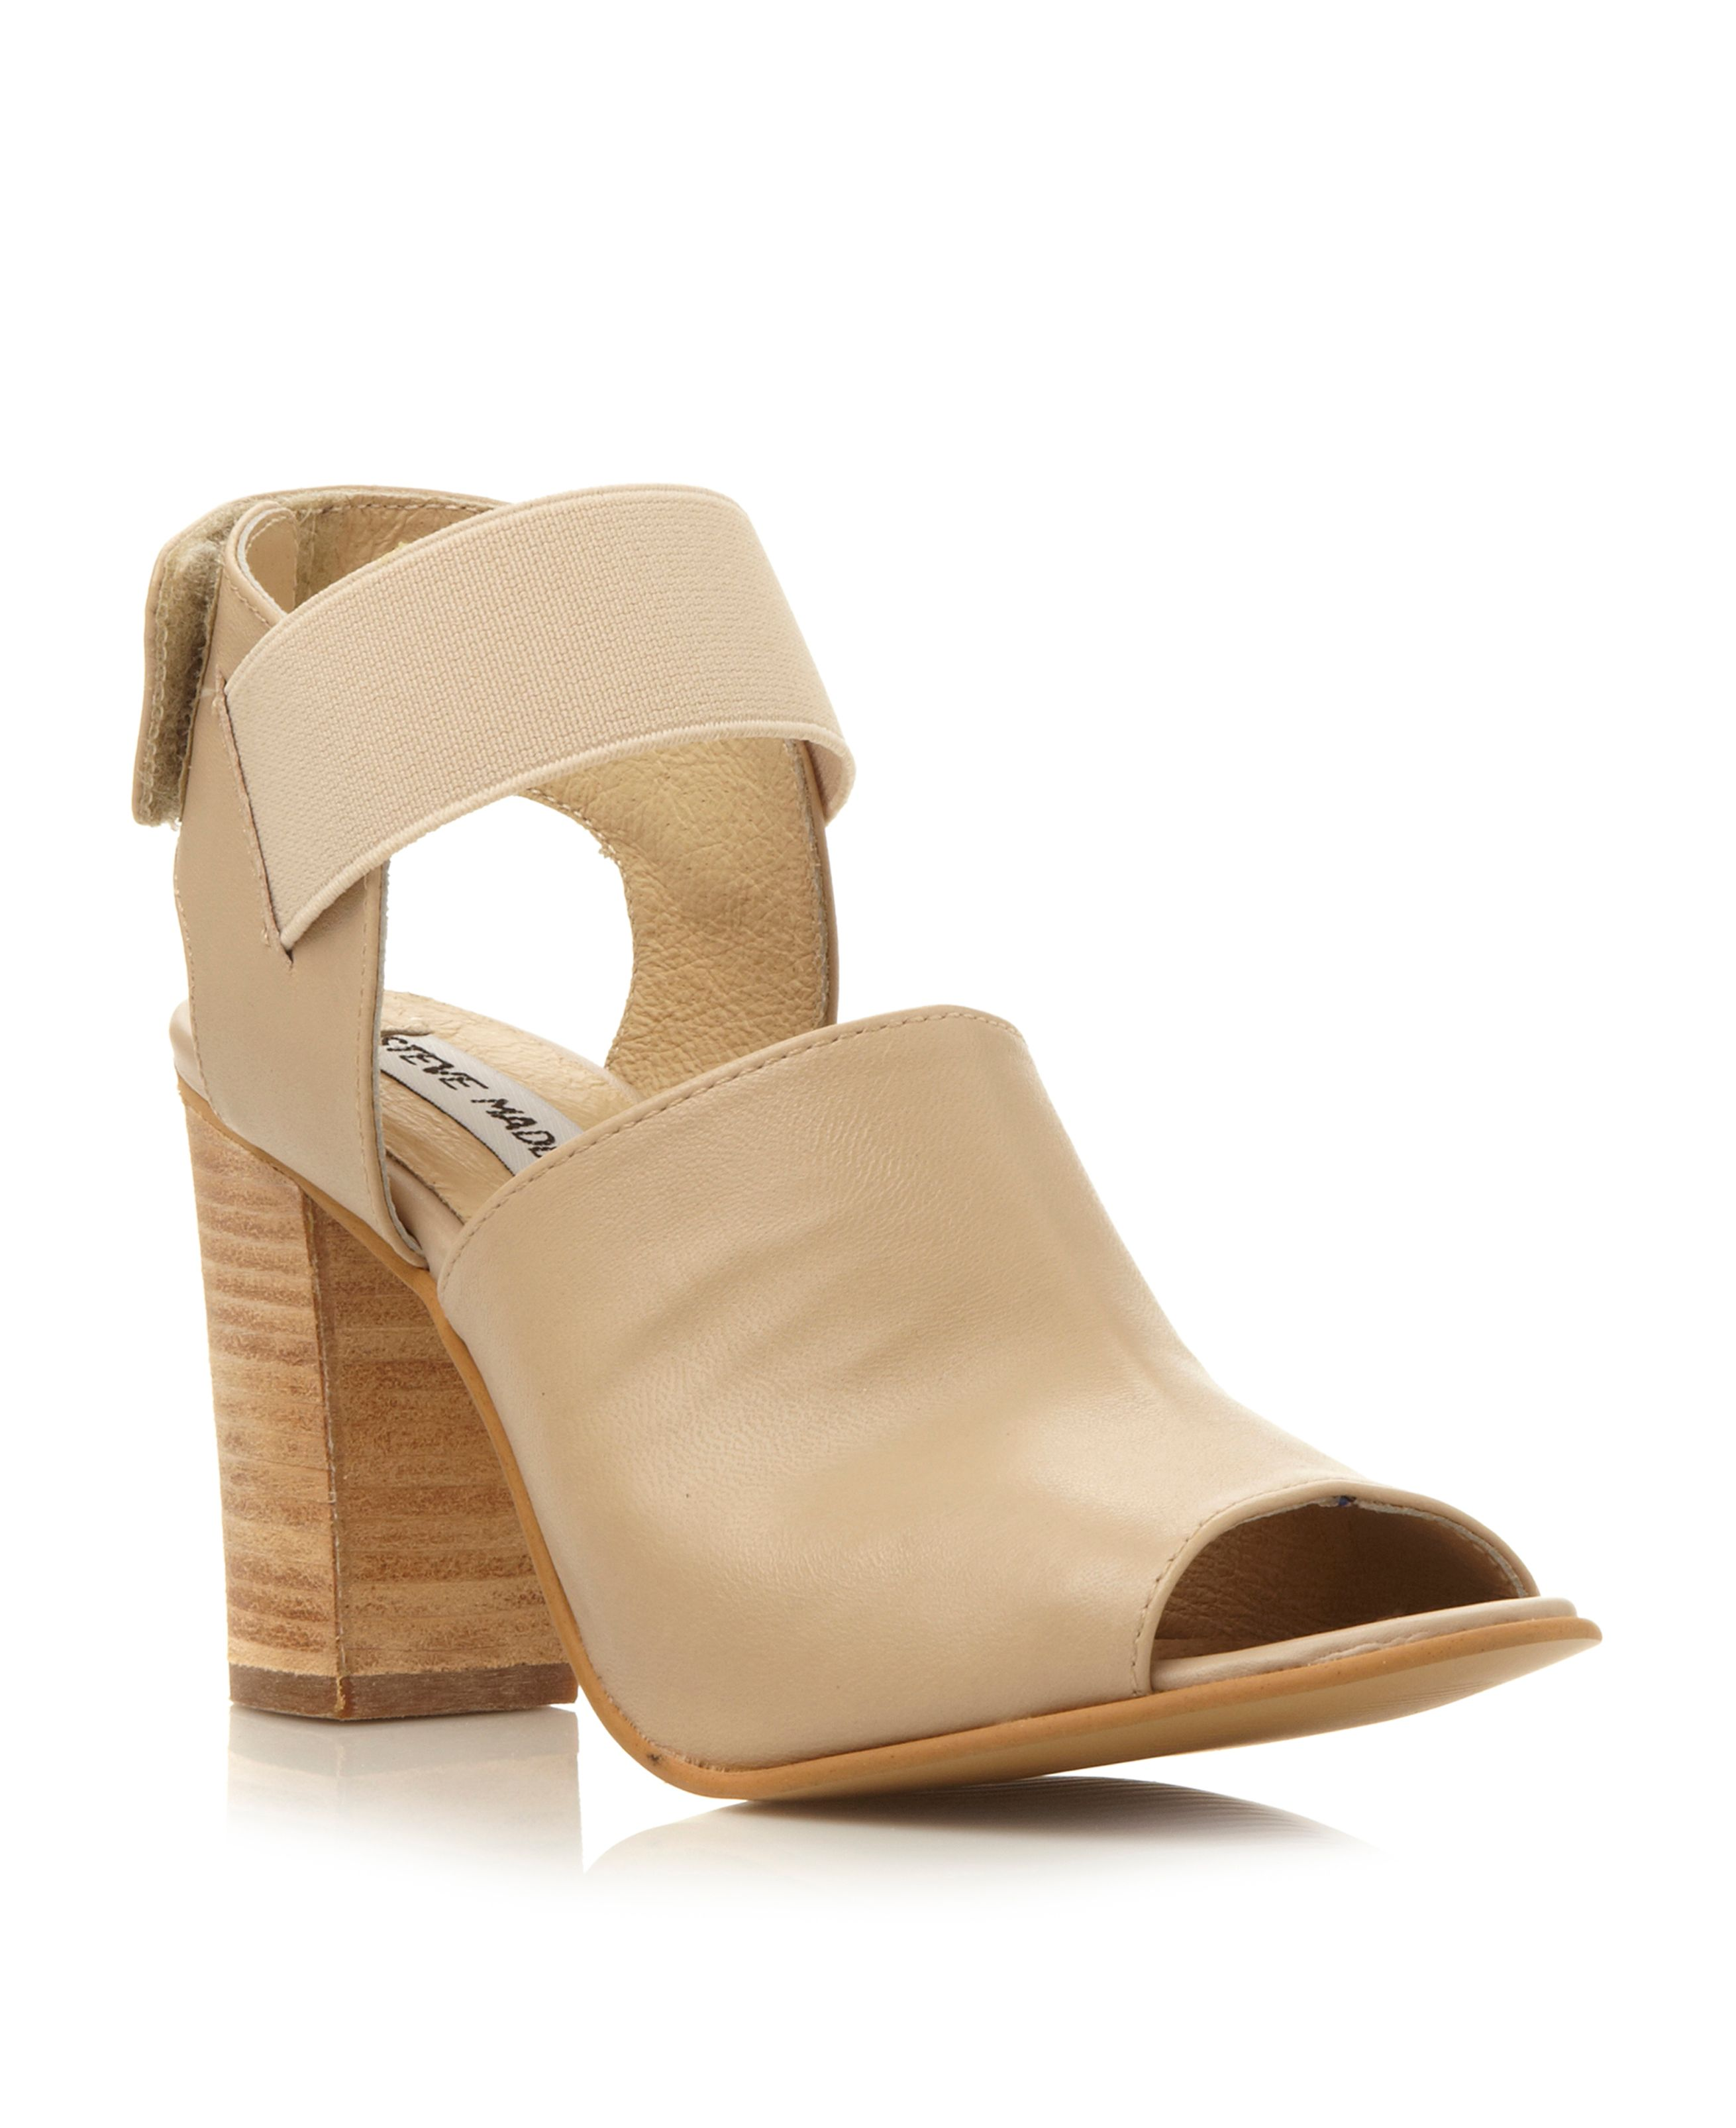 Savage stacked heel sandals